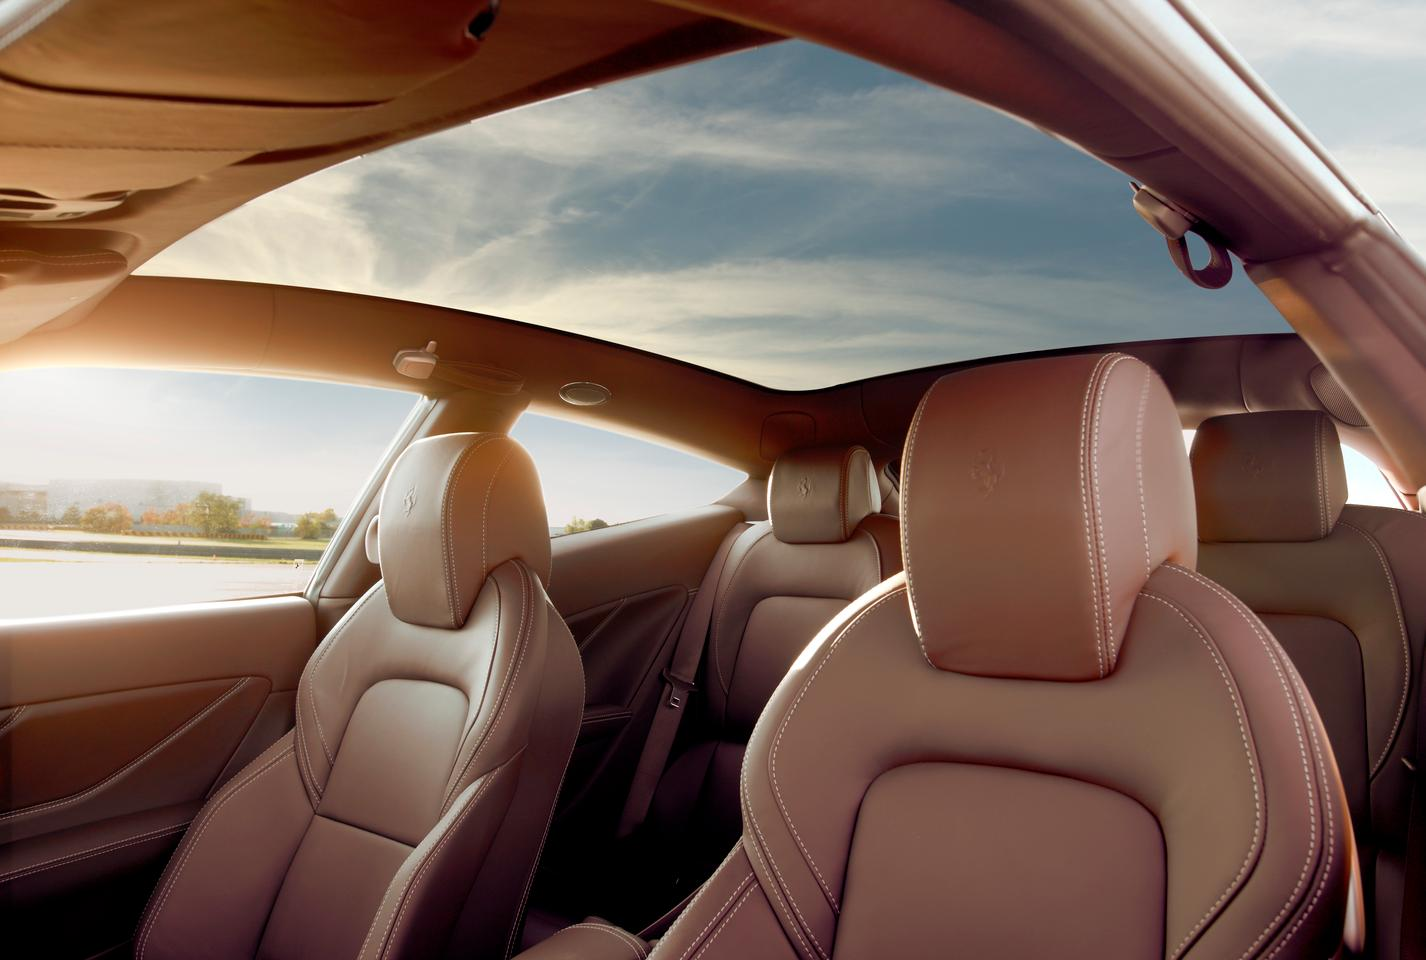 The new full-length panoramic roof in the Ferrari FF